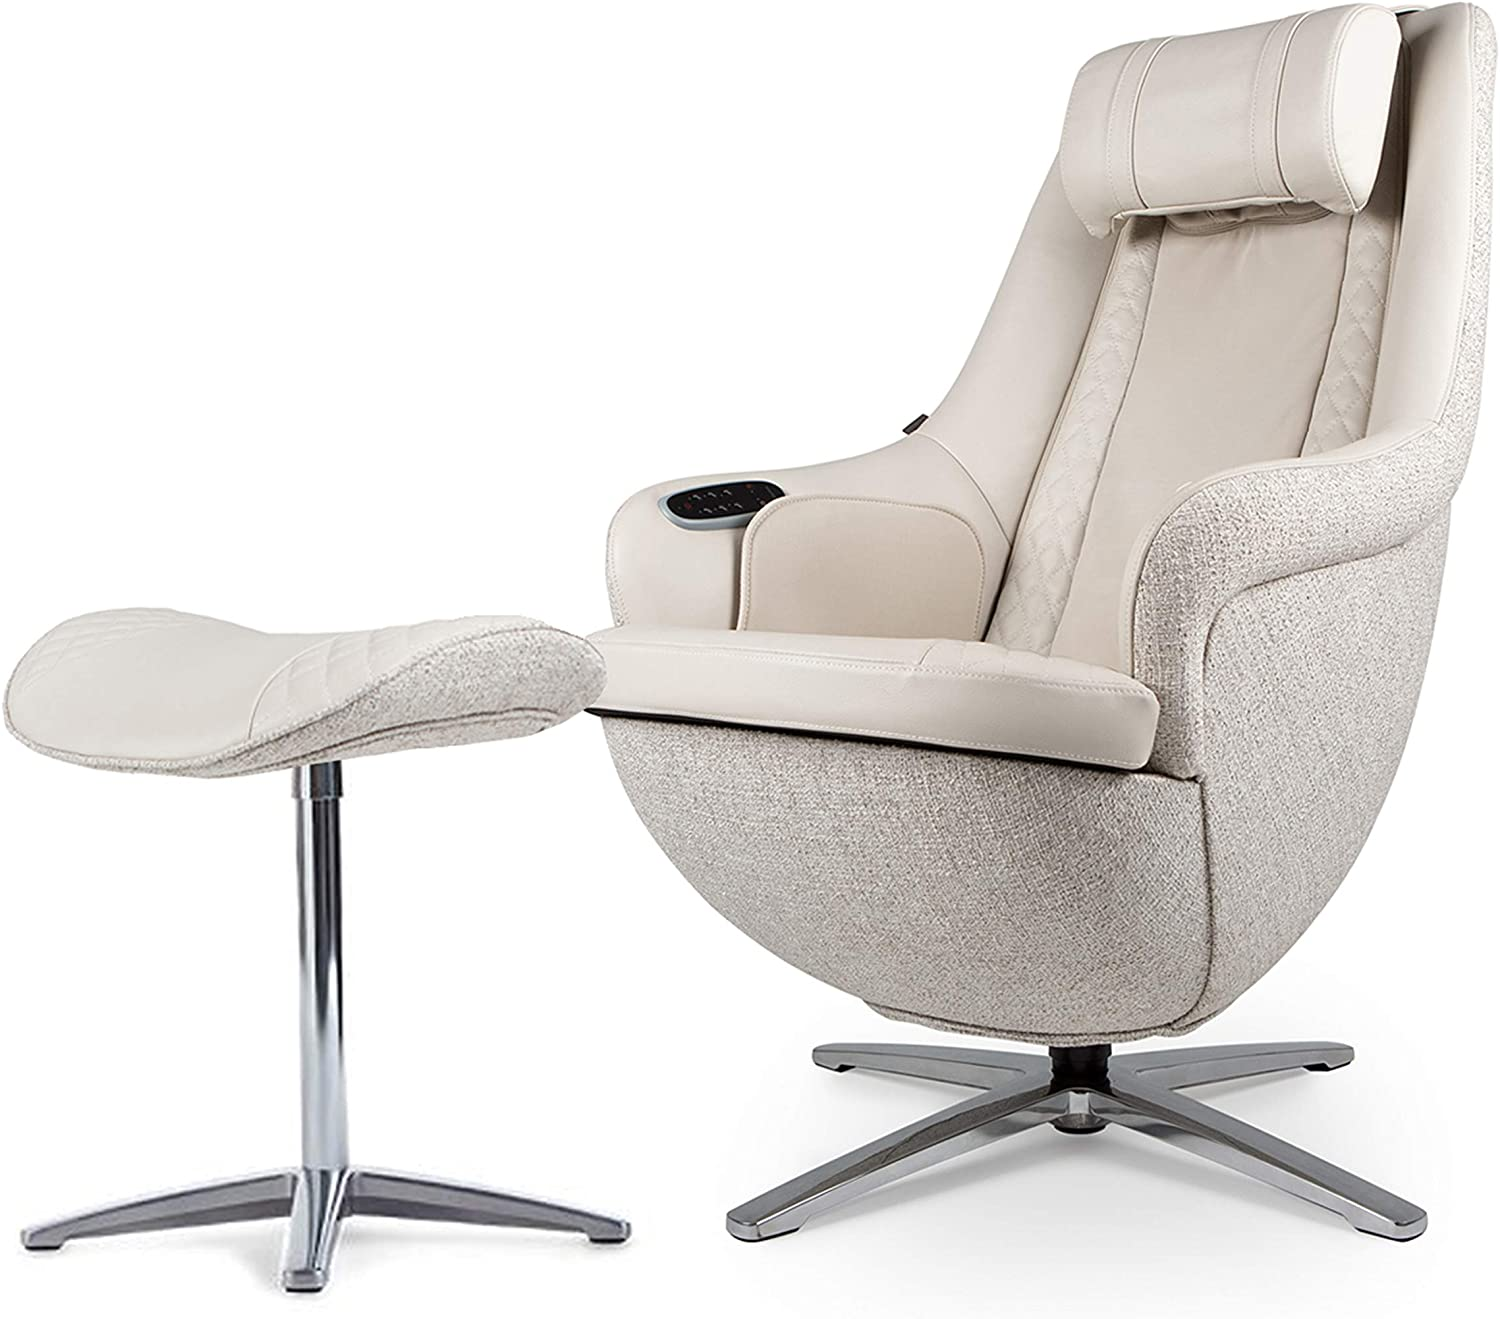 Nouhaus Modern Massage Chair with Ottoman. White Leather Chair, Recliner Chair Shiatsu Massager and Massage Chair with Heat. Head to Butt, Full Body Massager and Comfy Lounge Chair: Furniture & Decor